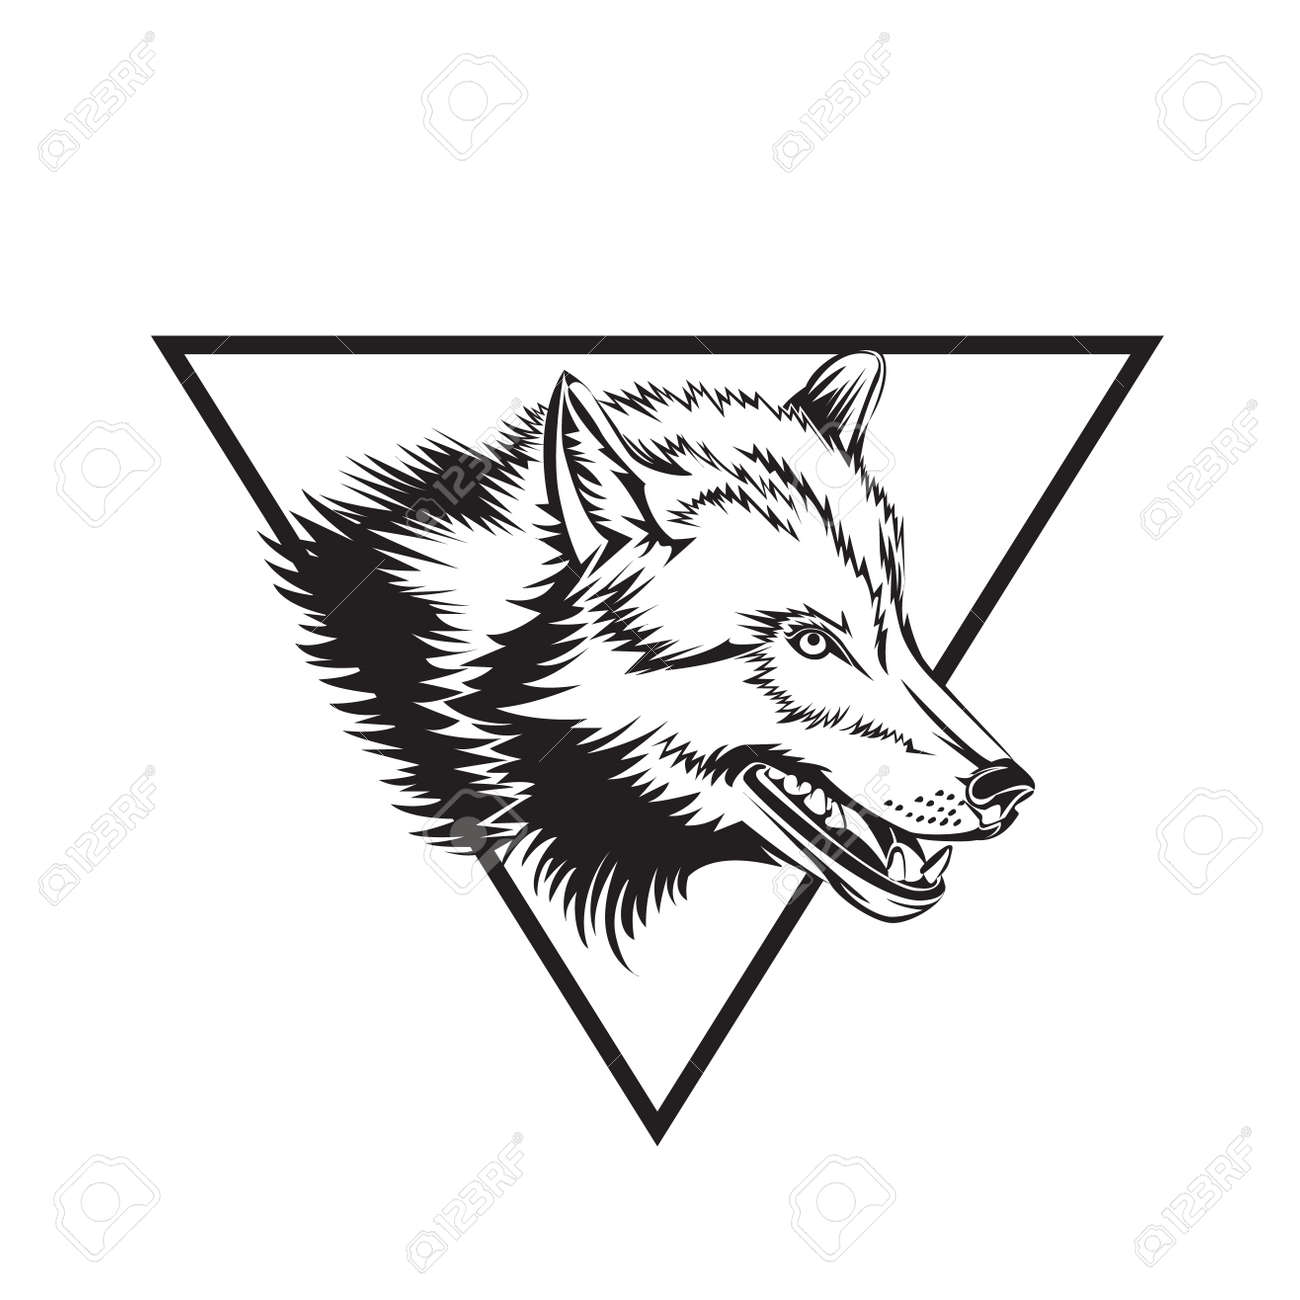 cd3e3bc7ca2fc Tattoo design sketch with wolf head. Vector illustration. Stock Vector -  101056277